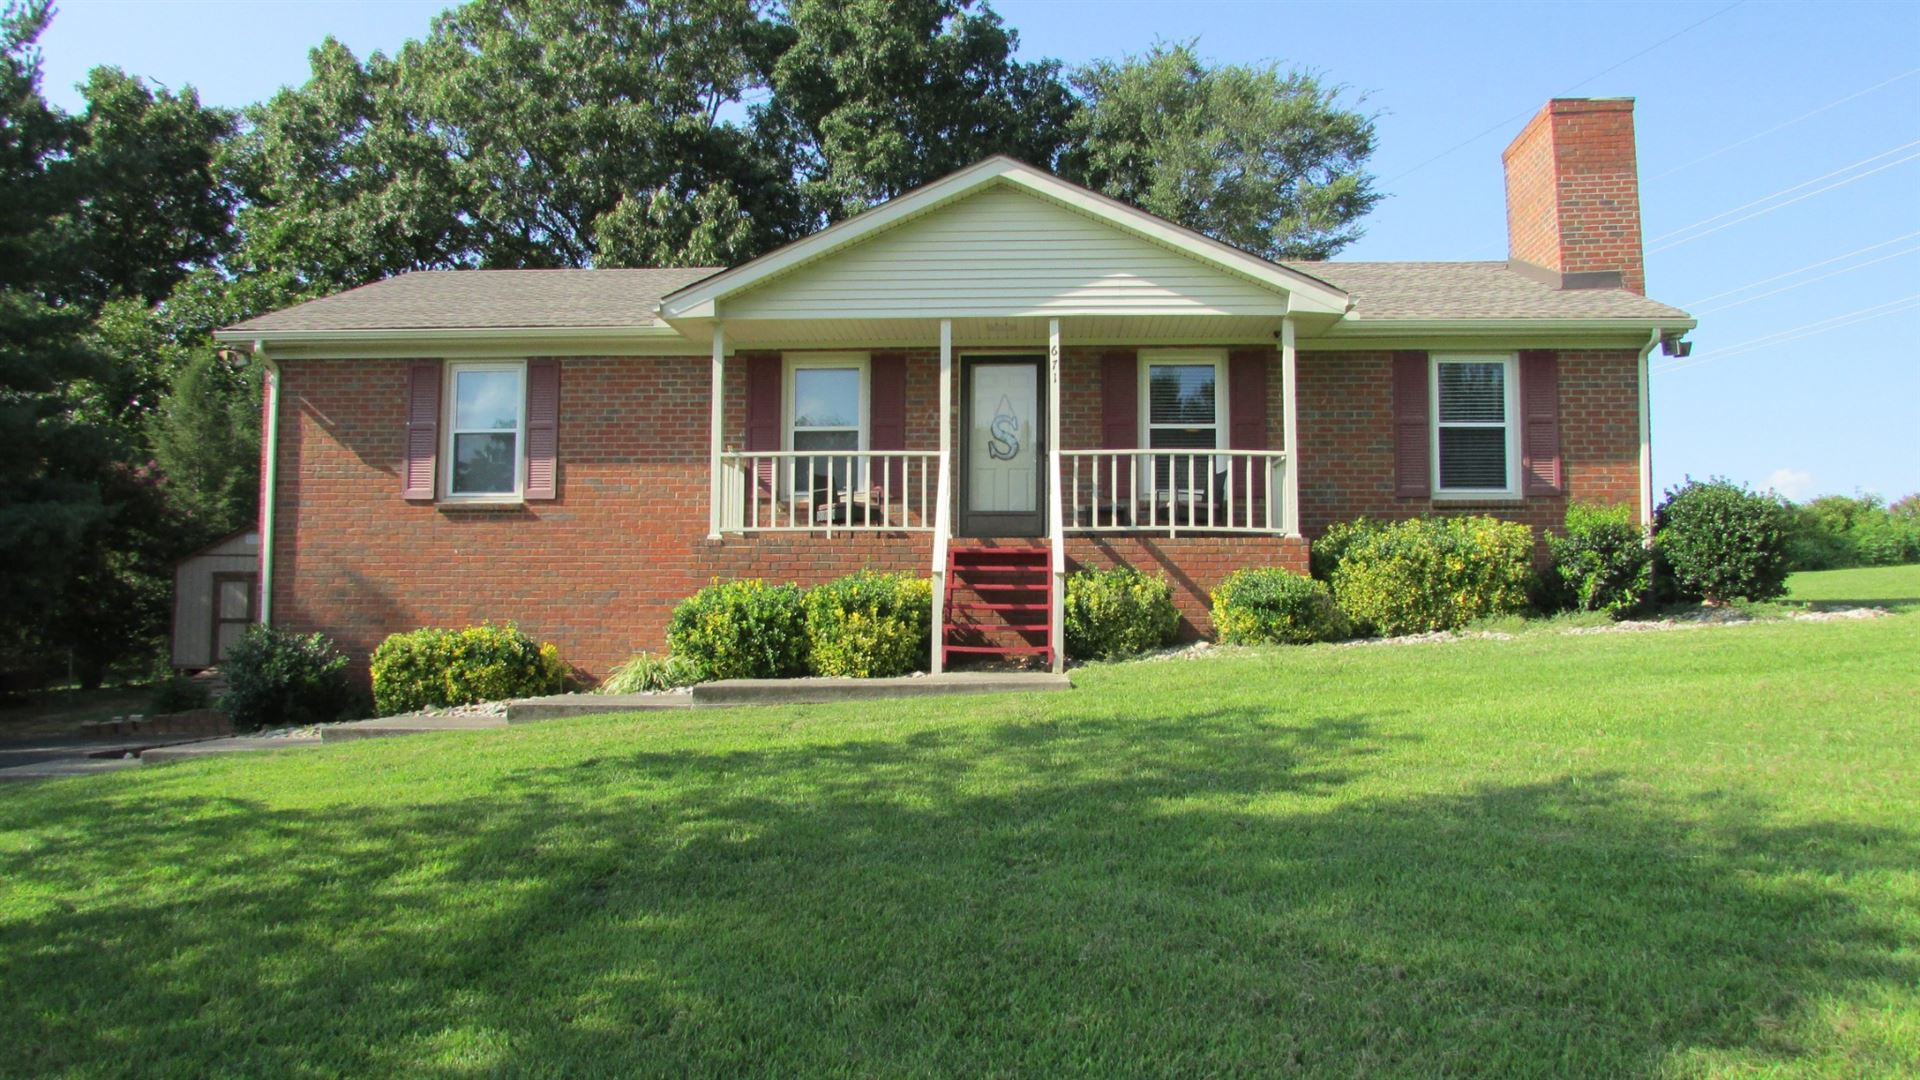 671 Lakeside Dr, Springfield, TN 37172 - MLS#: 2178171